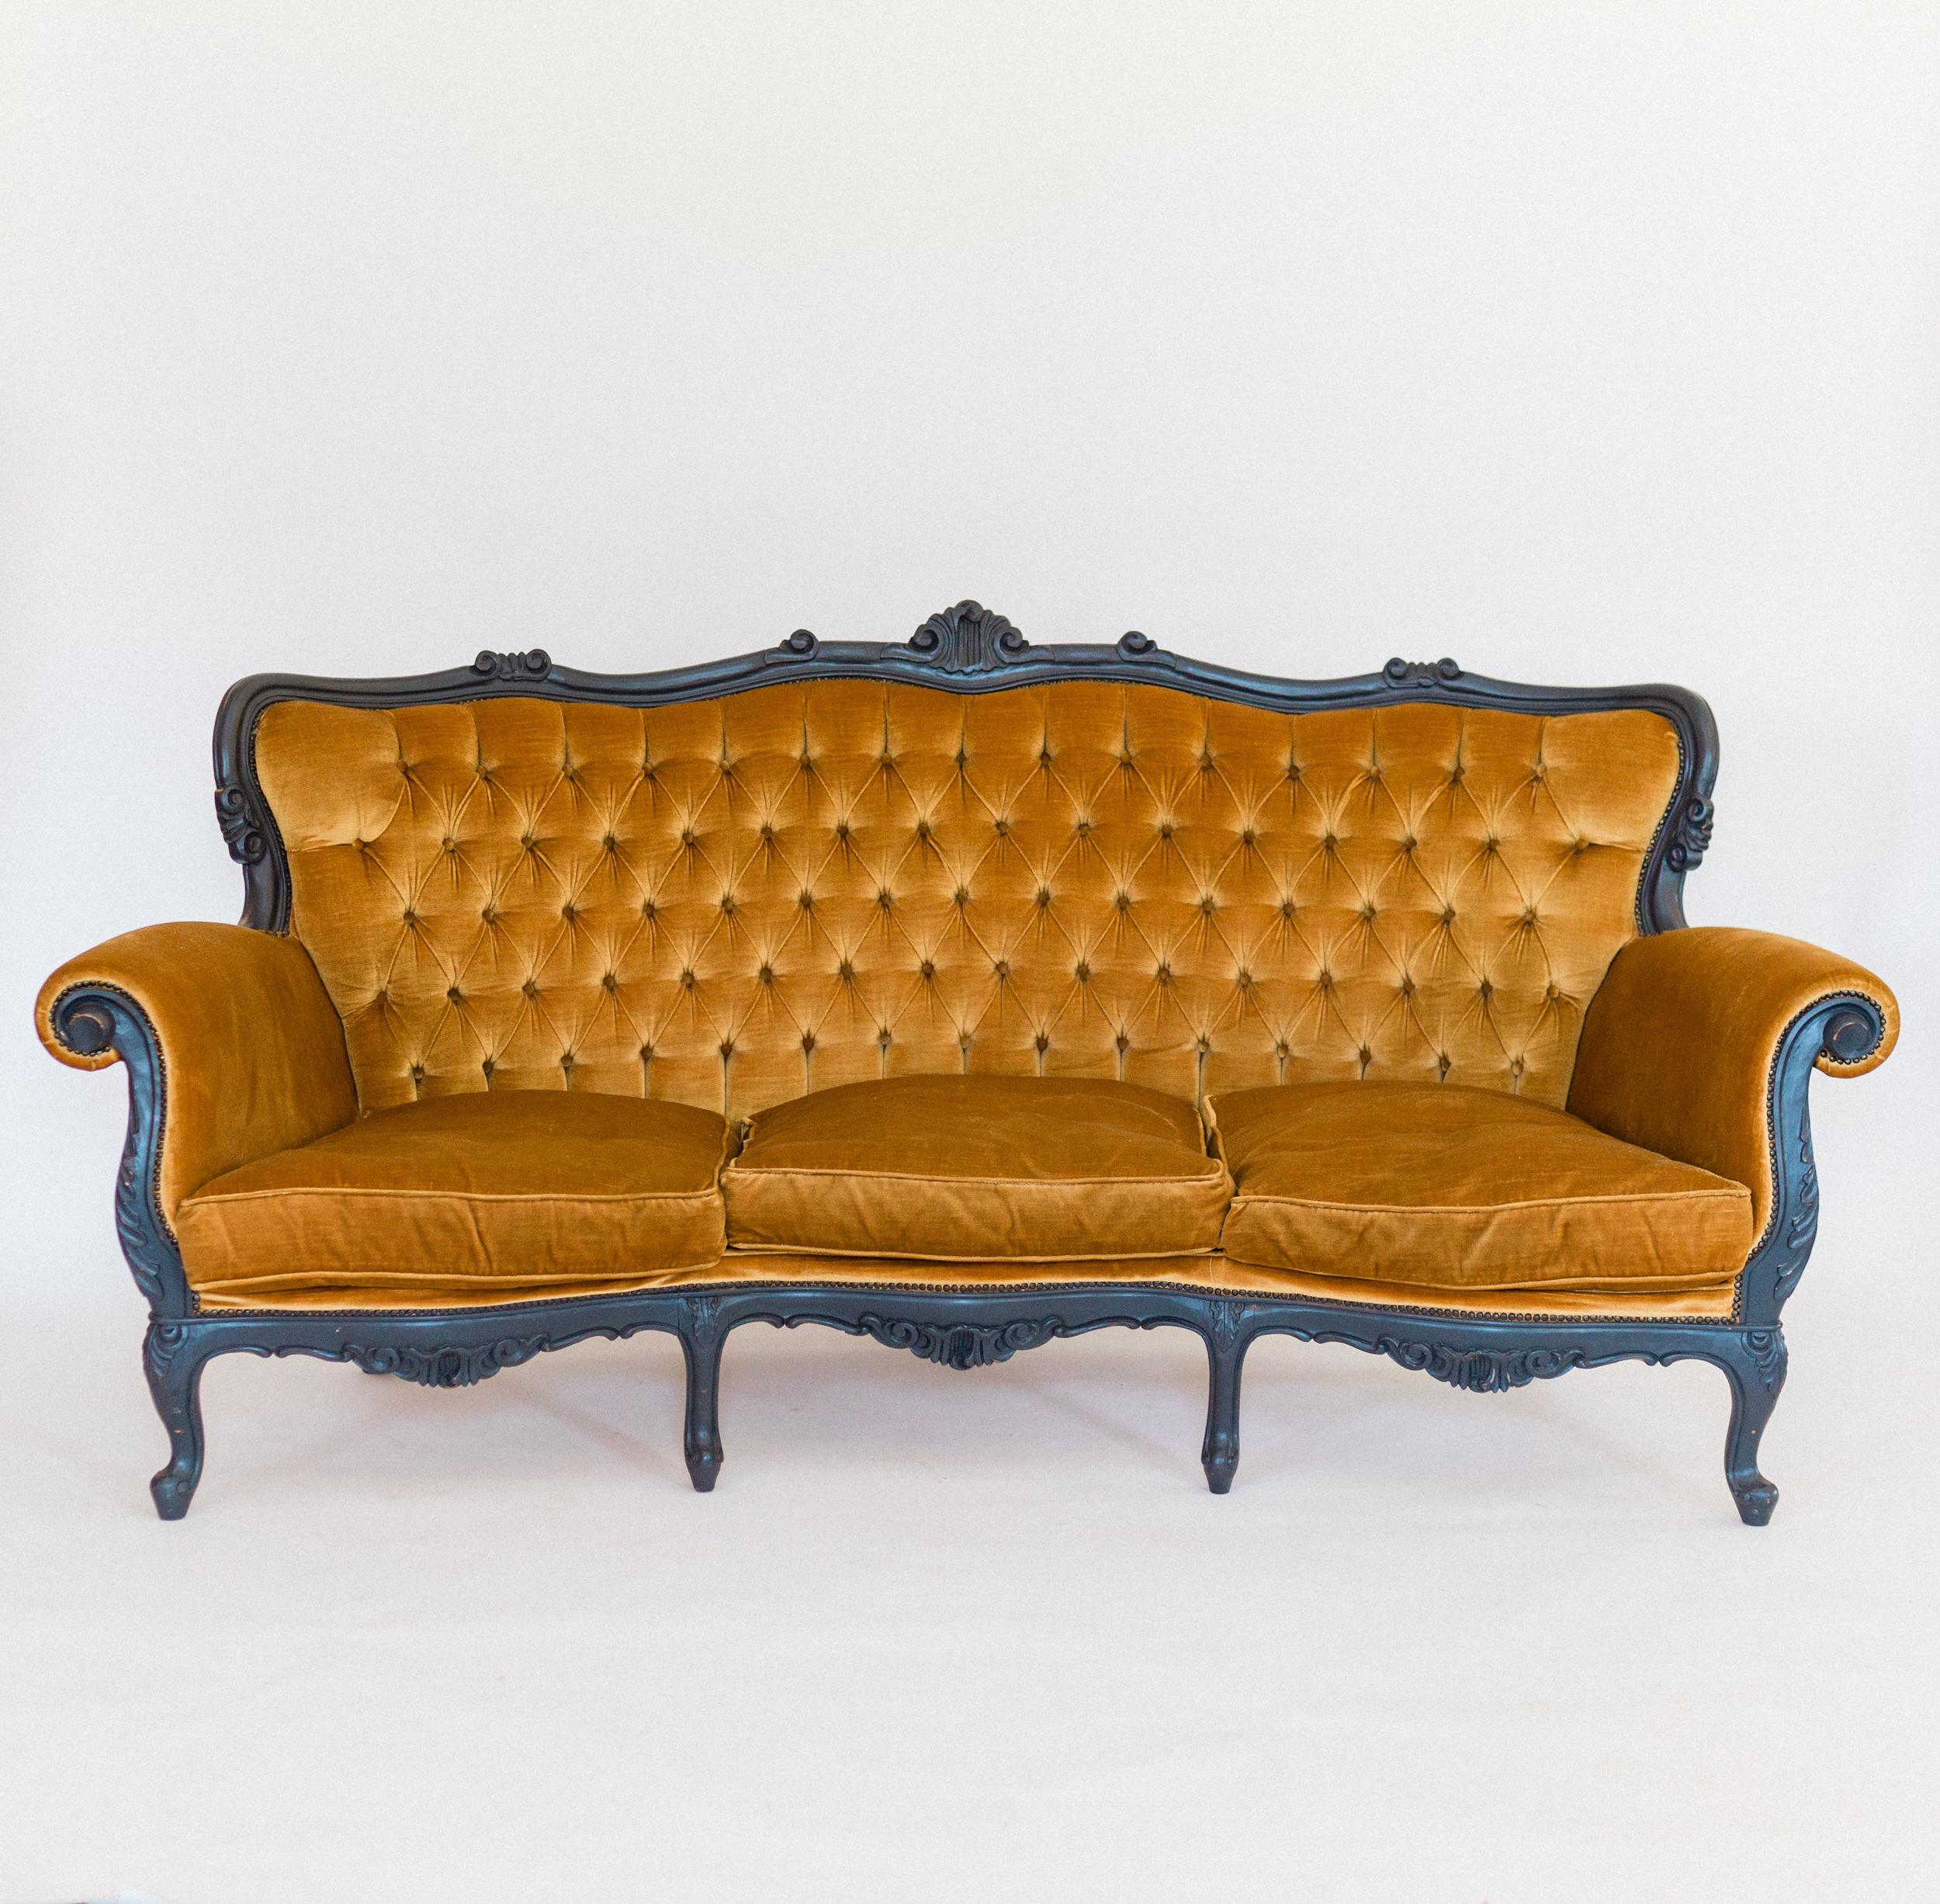 Most Popular Callie Sofa Chairs Regarding Callie Sofa — Greenhouse Picker Sisters (View 13 of 20)